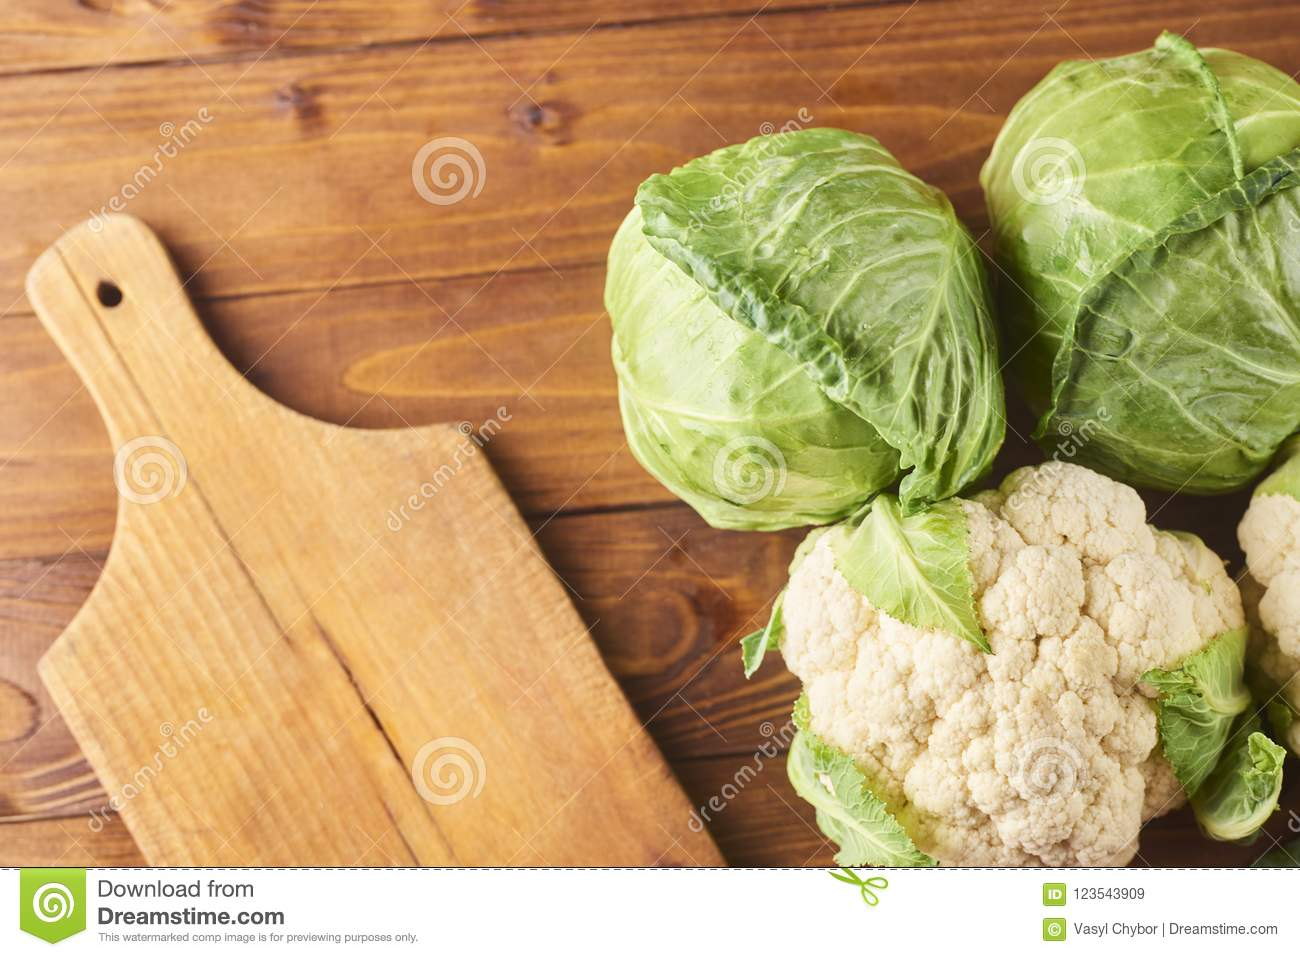 Various types of cabbage with cutting board and knife